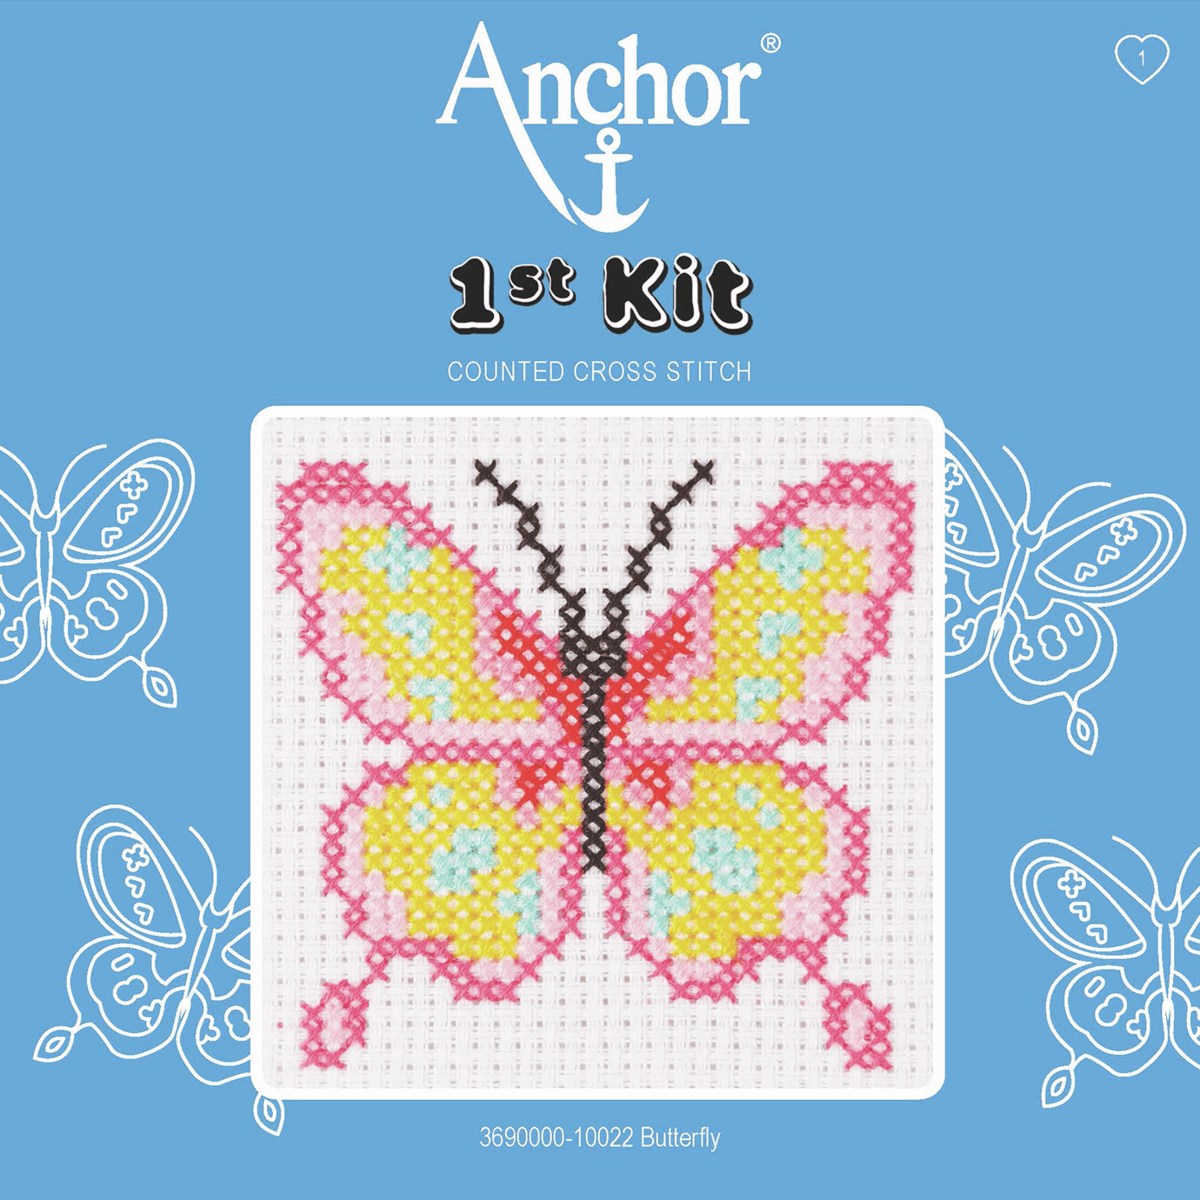 1st Cross Stitch Kit by Anchor - Butterfly